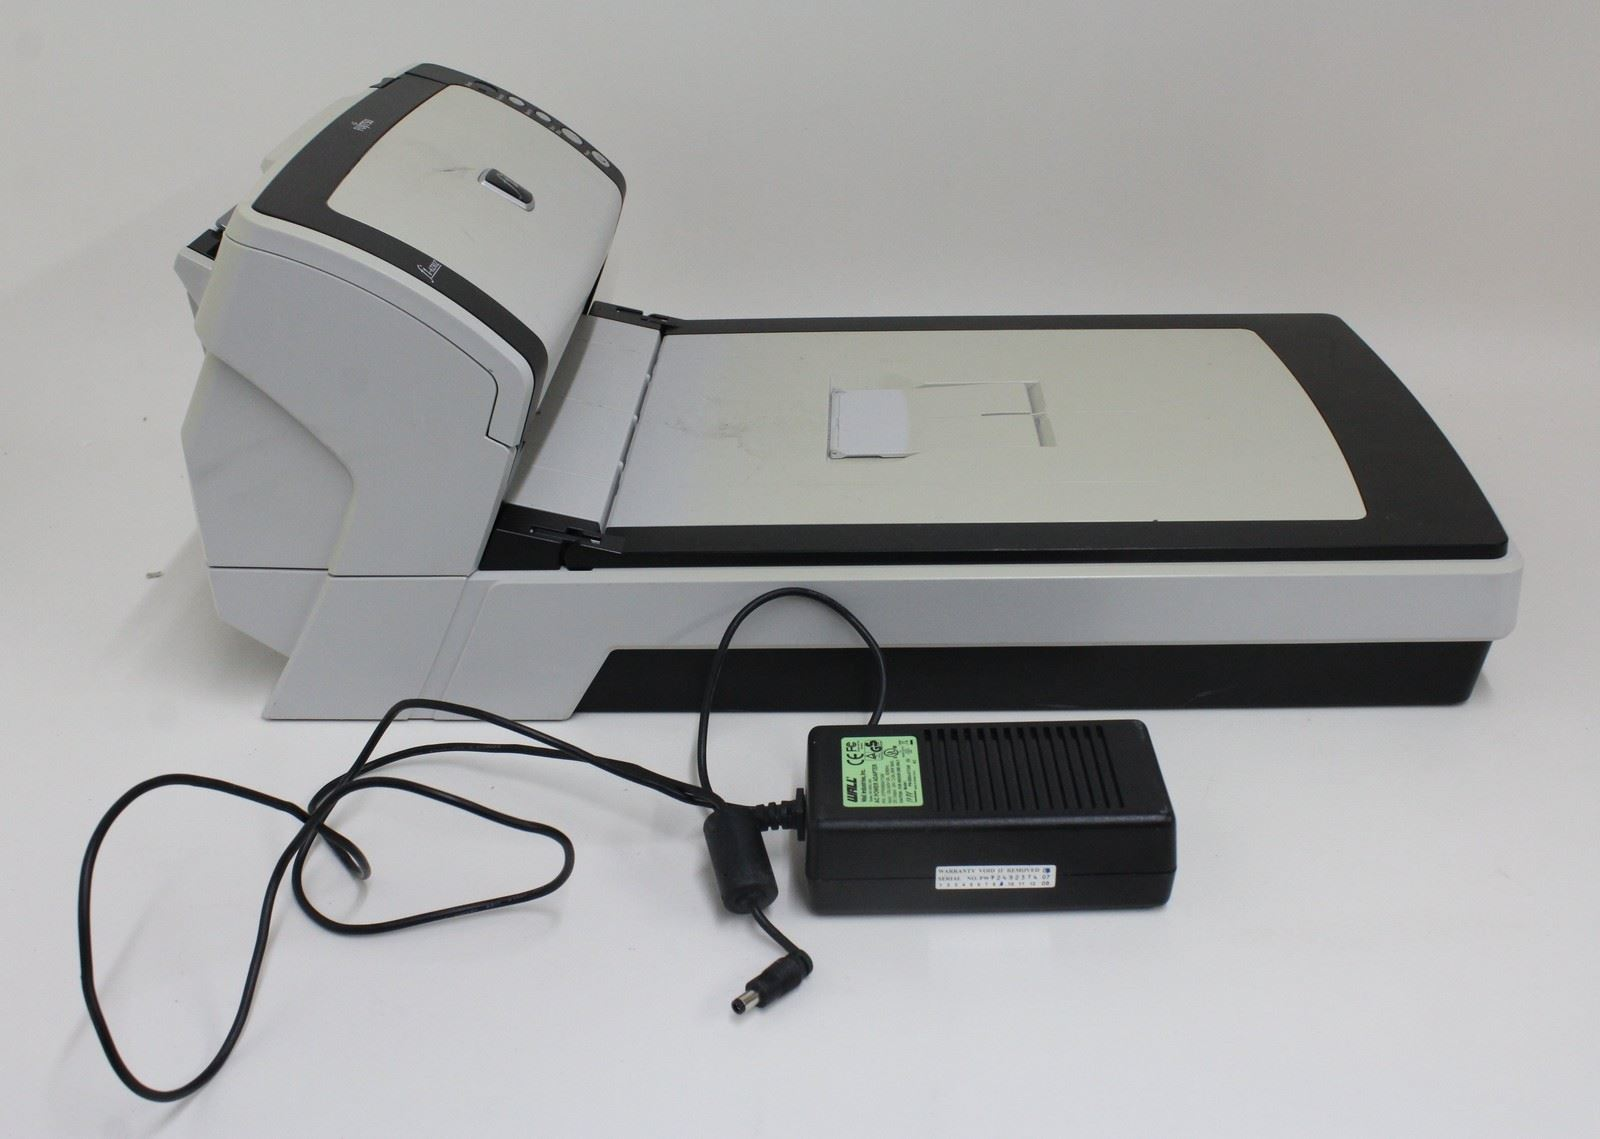 Fujitsu Scanner Fi 6230z Drivers For Windows Download Series 7700s